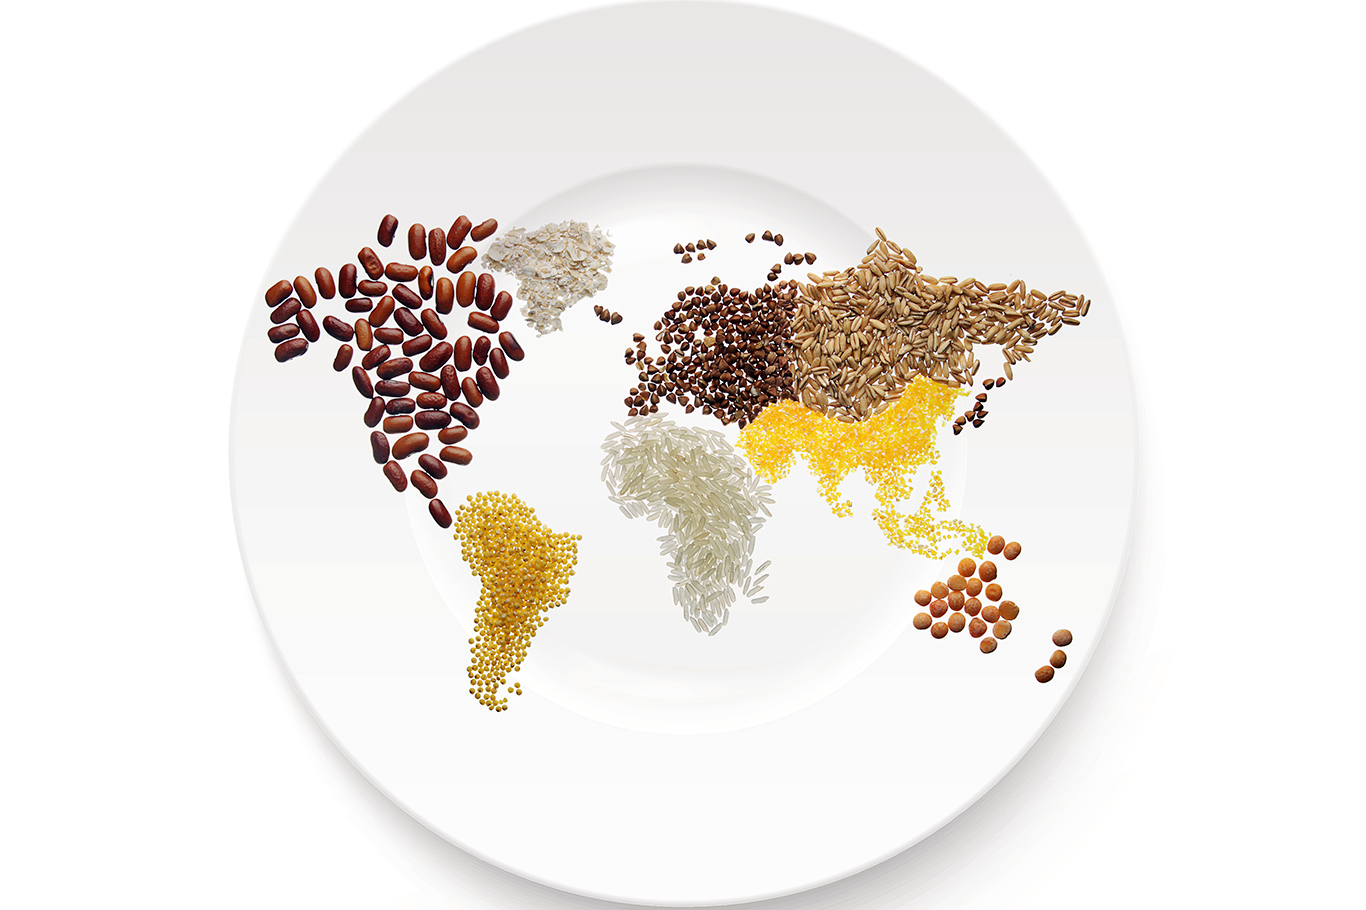 sustainable-food-in-a-plate-in-a-world-map-shape